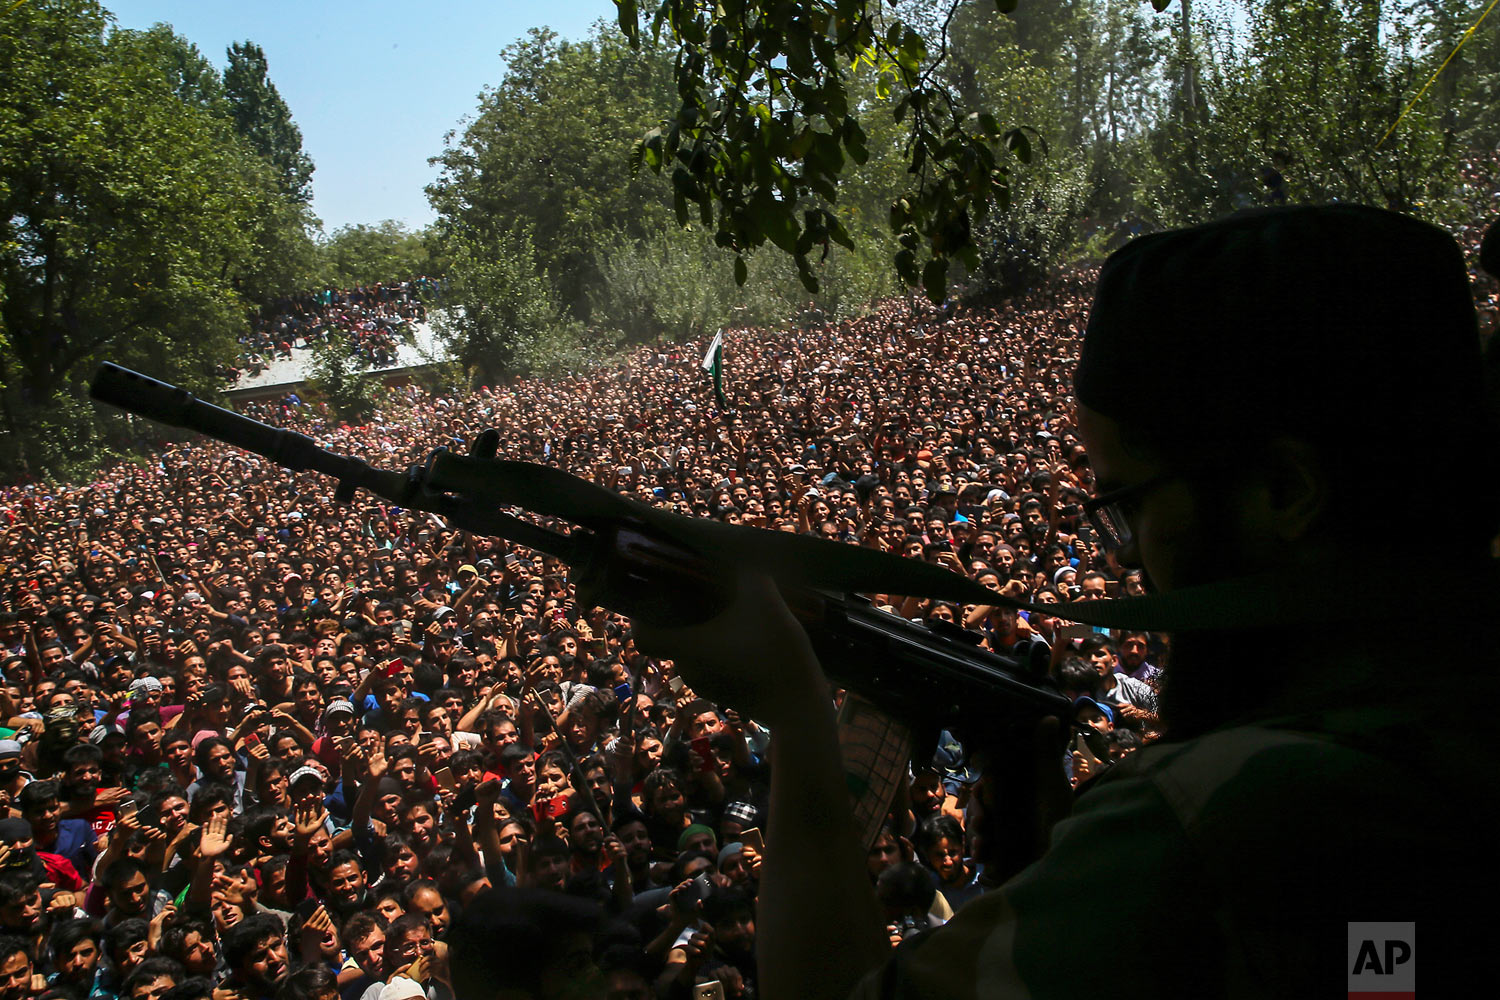 A Kashmiri rebel fires his gun to salute fallen comrades during their joint funeral in Malikgund village, south of Srinagar, Indian controlled Kashmir, Saturday, Aug. 4, 2018. At rebels and an Indian army soldier were killed in gunbattles in disputed Kashmir, triggering violent protests by residents opposed to Indian rule, officials said Saturday. (AP Photo/Dar Yasin)